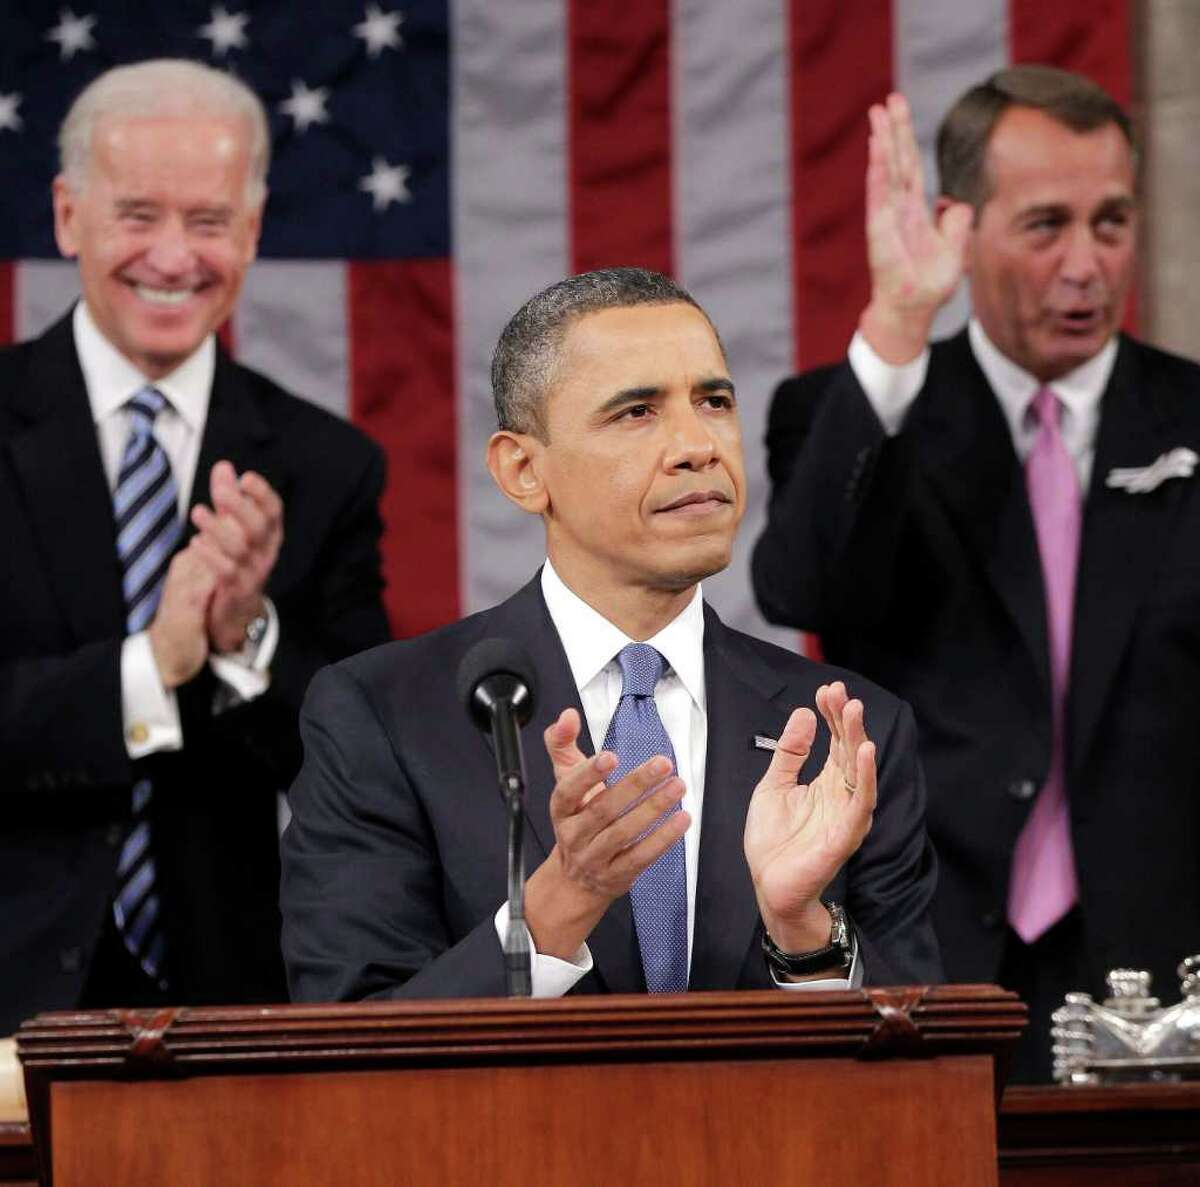 President Barack Obama is applauded by Vice President Joe Biden and House Speaker John Boehner of Ohio, prior to delivering his State of the Union address on Capitol Hill in Washington, Tuesday, Jan. 25, 2011.